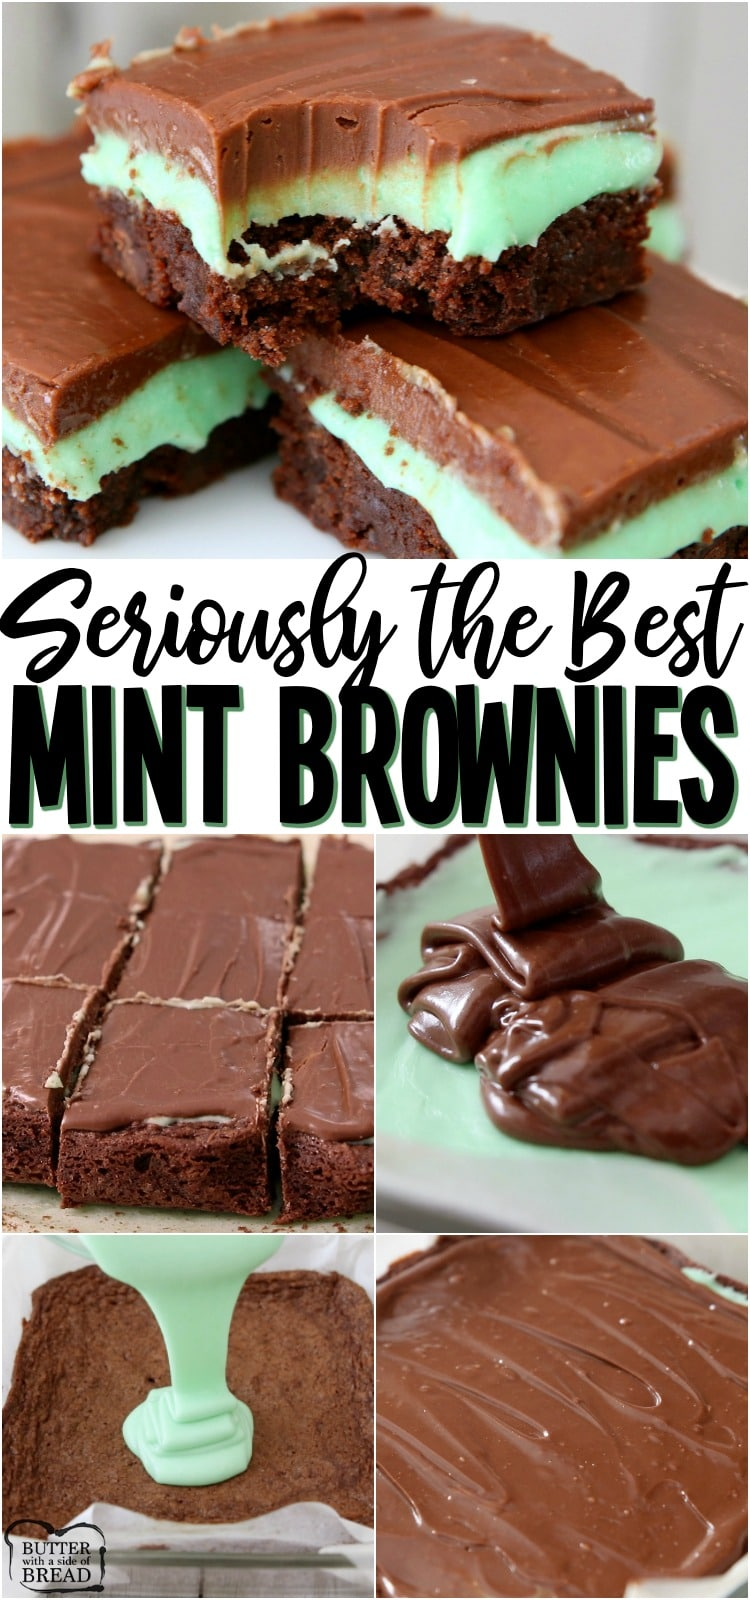 Best Mint Brownie Recipe made easy & baked to fudgy, chocolate perfection! The double layer of mint & chocolate frosting is incredible. Perfect for St. Patrick's Day dessert!